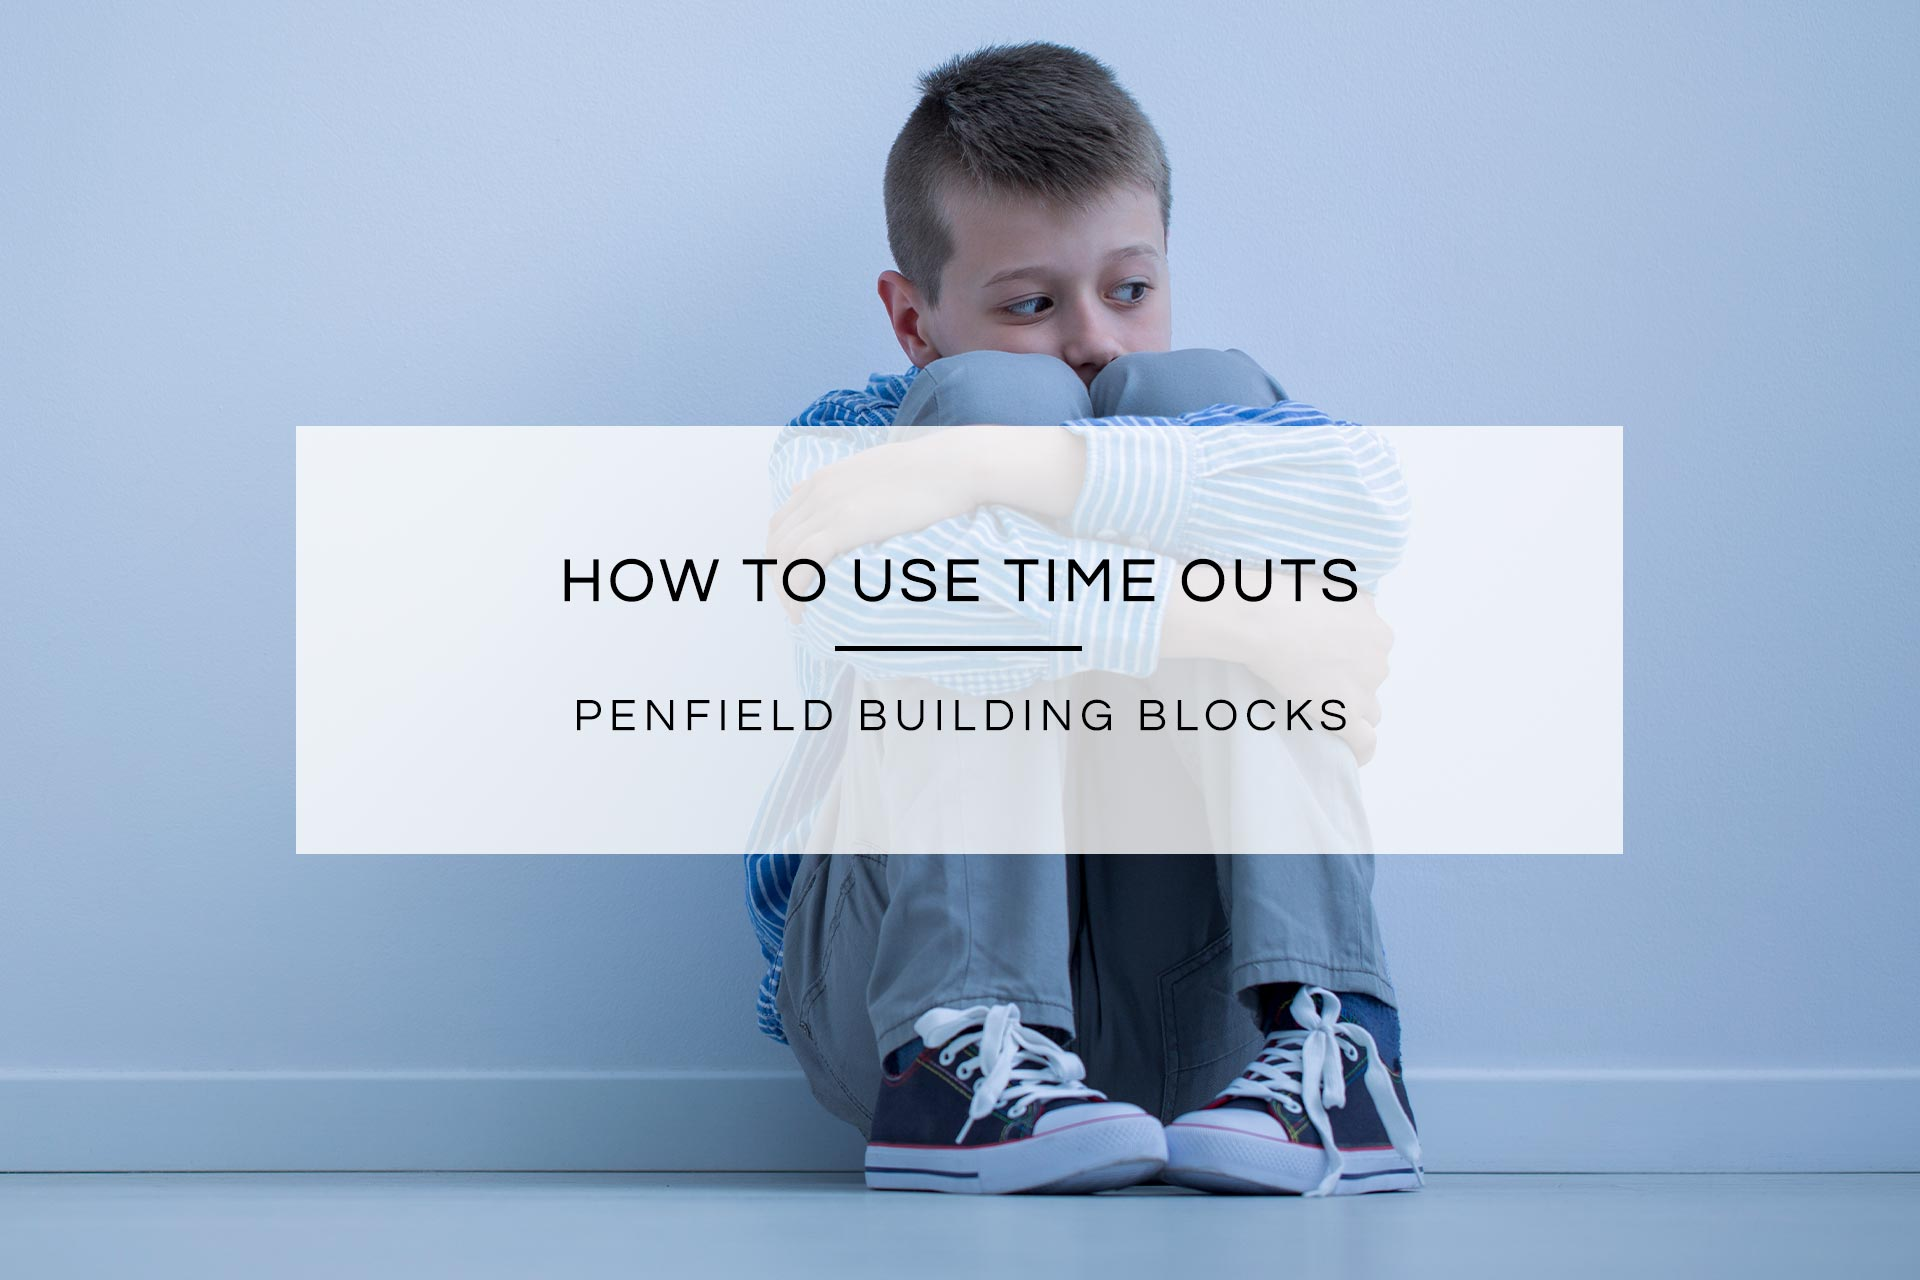 How to Use Time Outs | Penfield Building Blocks